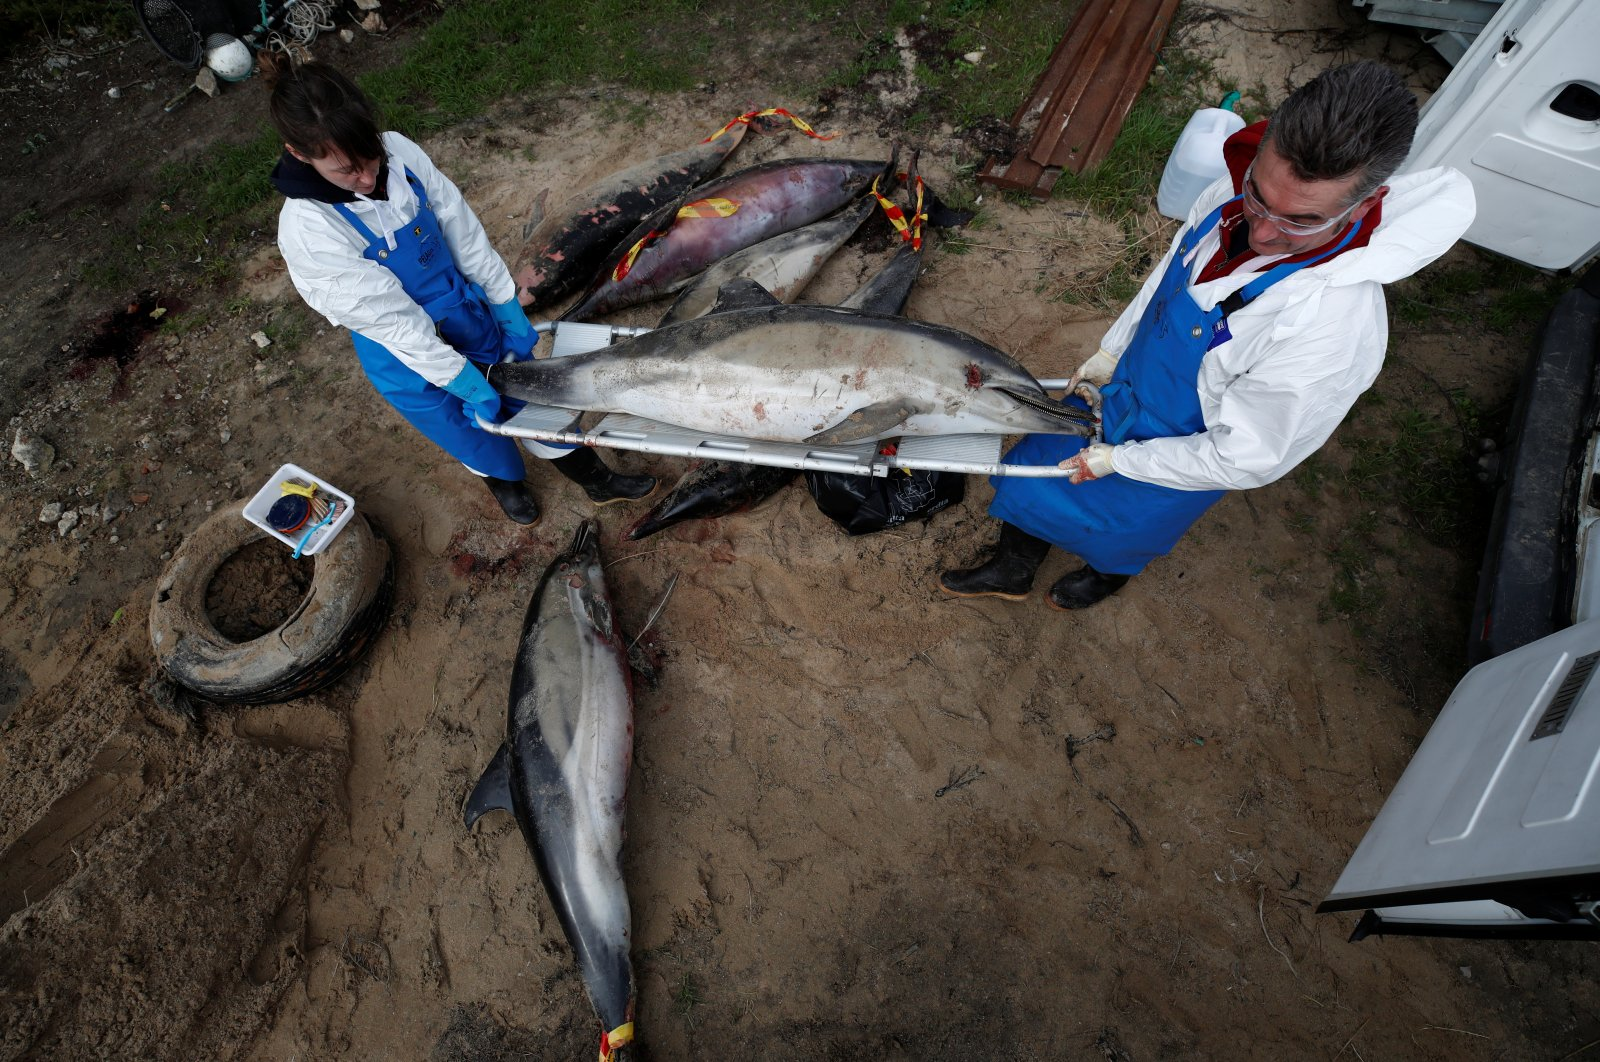 Experts at the Observatoire Pelagis conducting scientific autopsies at municipal technical services in Barbatre on Noirmoutier Island carry a dolphin that was found dead on a beach, France, Feb. 11, 2020. (Reuters Photo)